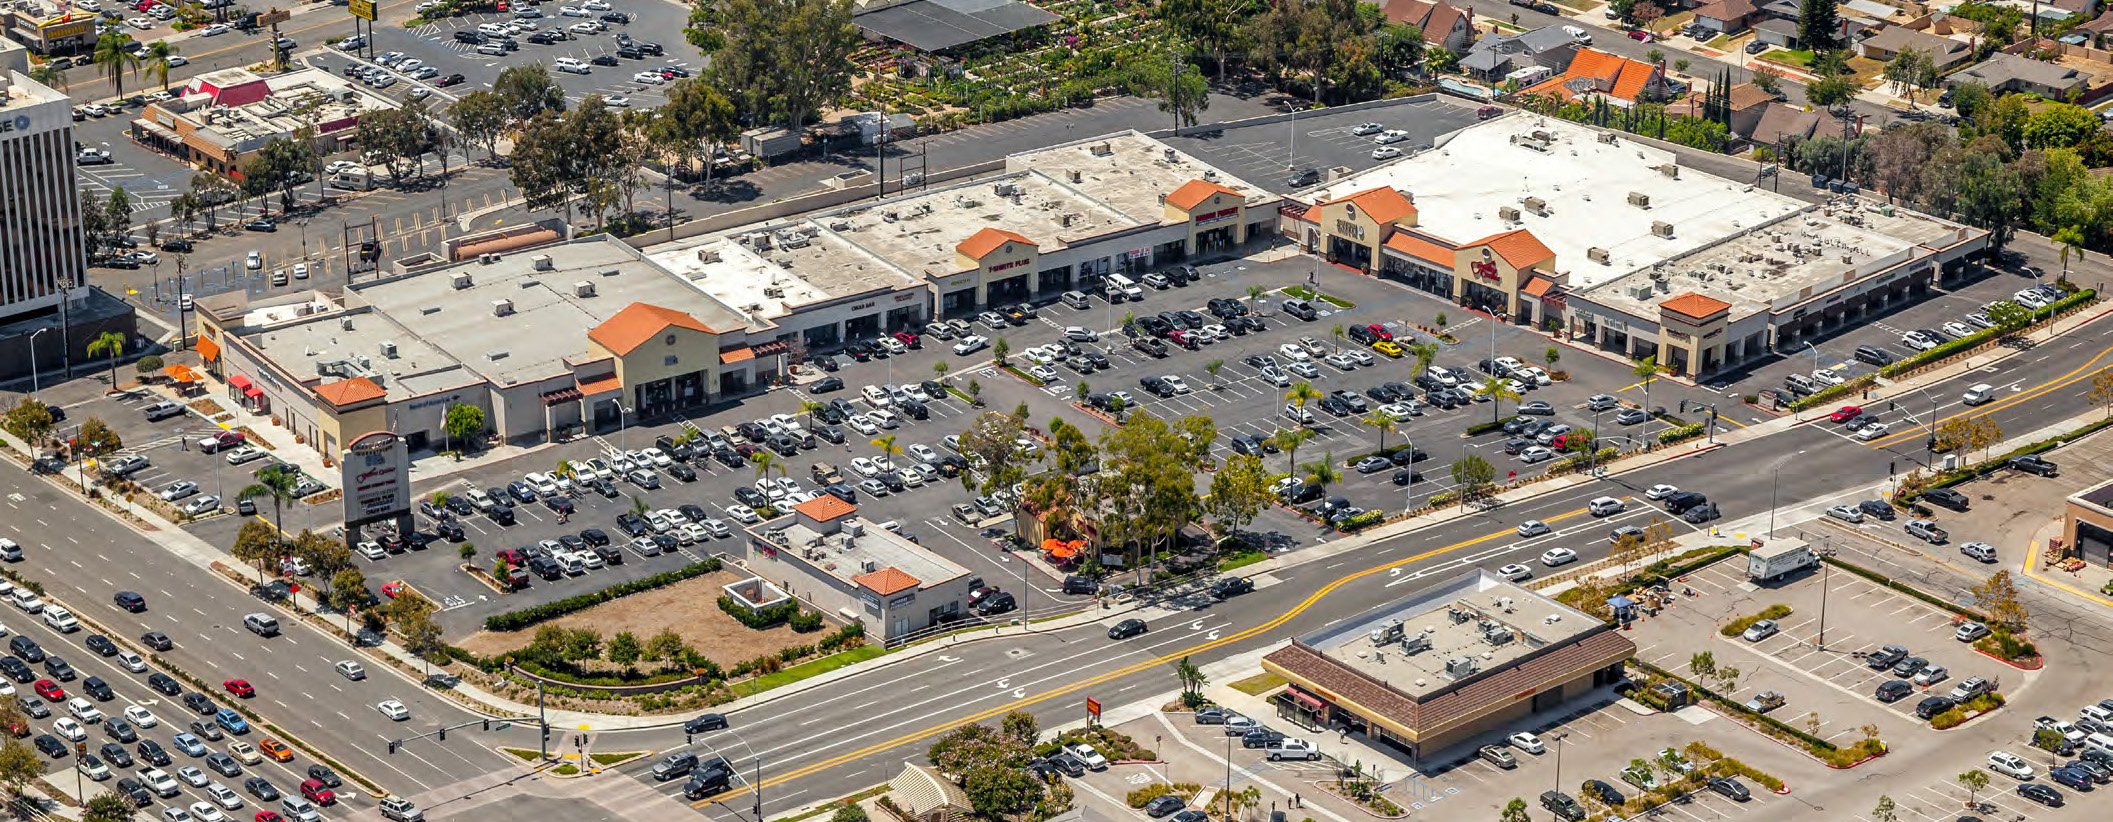 Lake Forest Marketplace - OM - 10-16-7-aerial_9x3.5.jpg